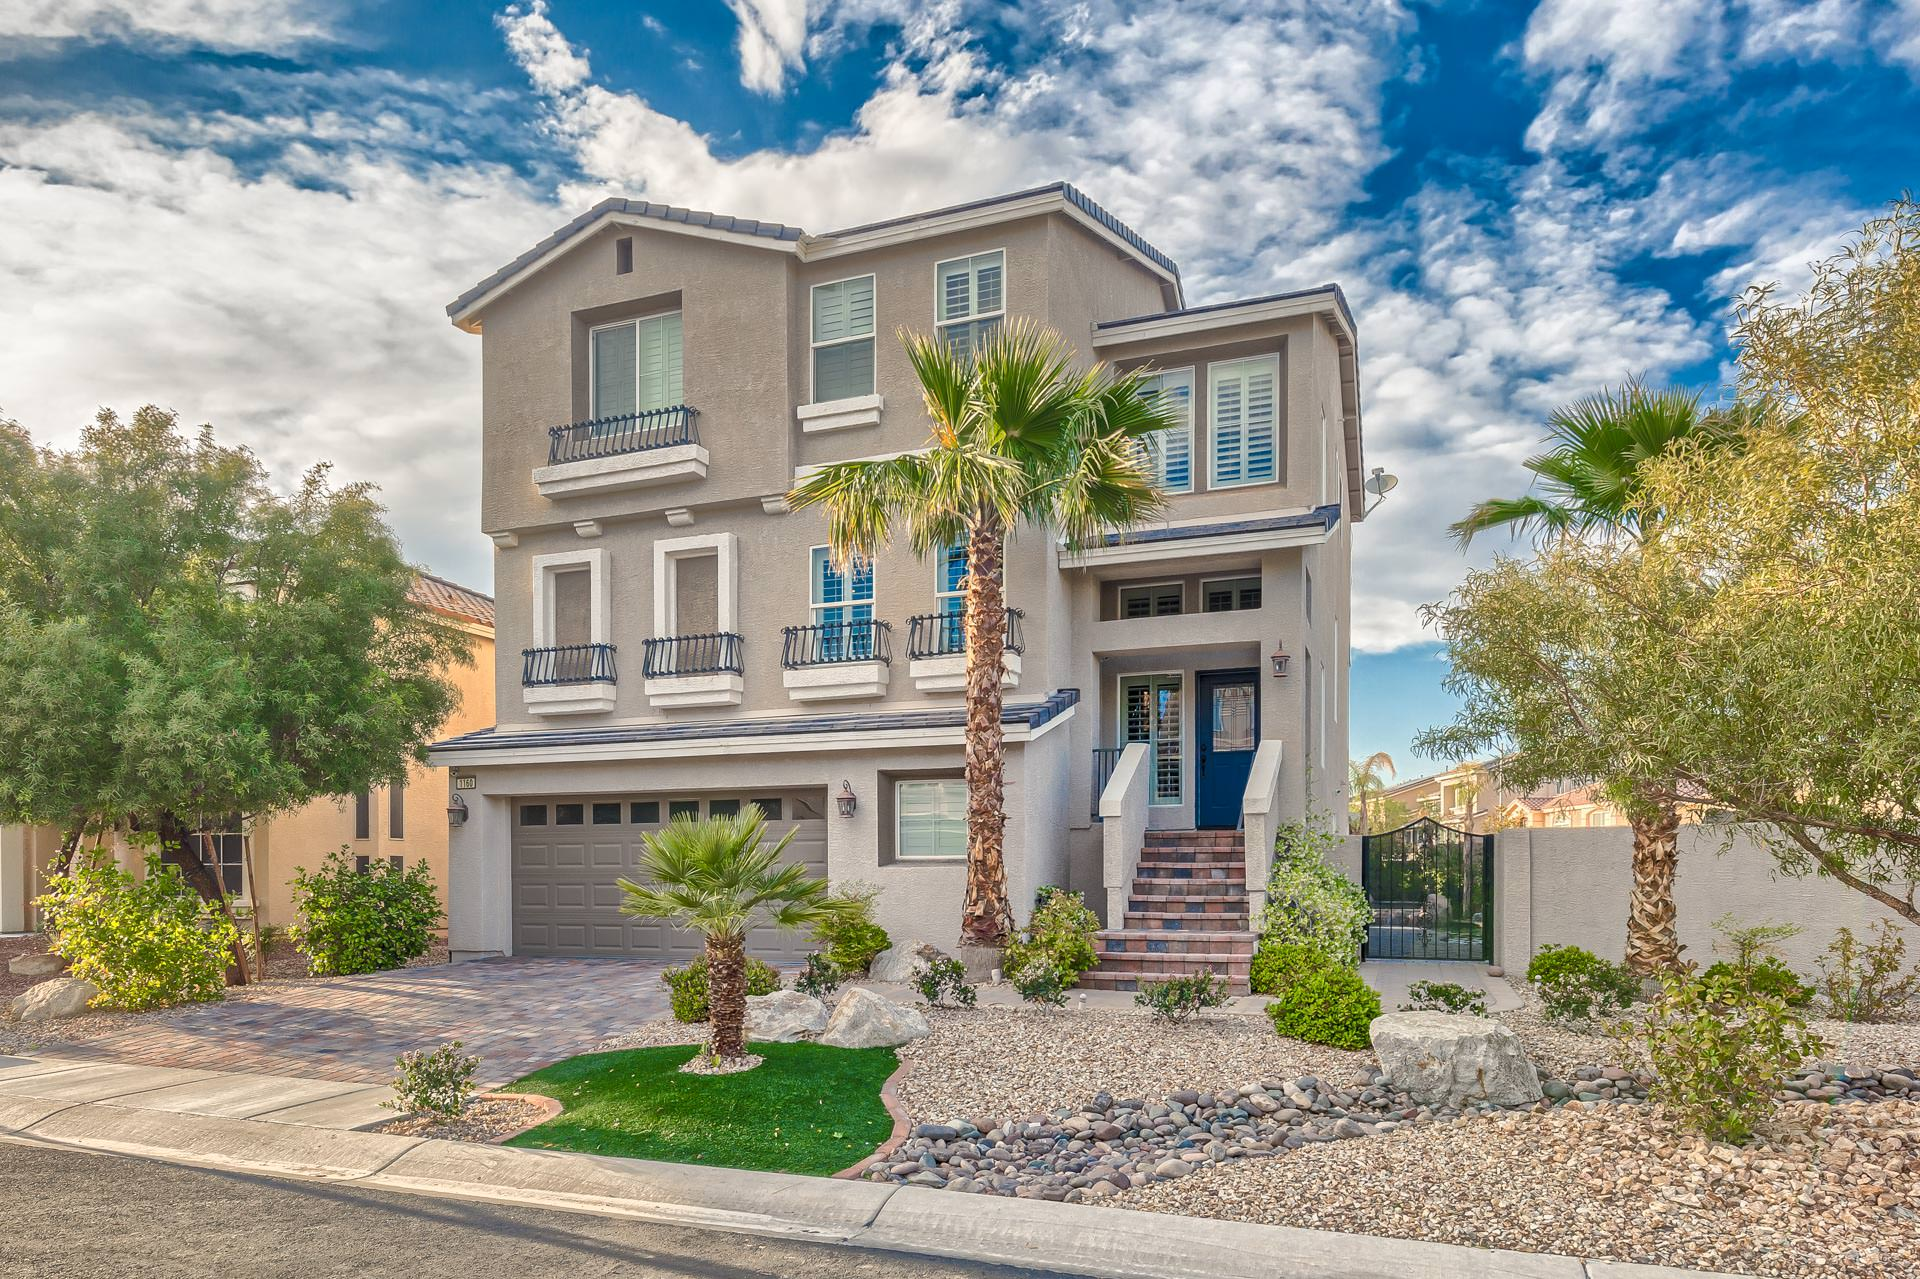 Million dollar homes in las vegas for sale up to 1m for Henderson house